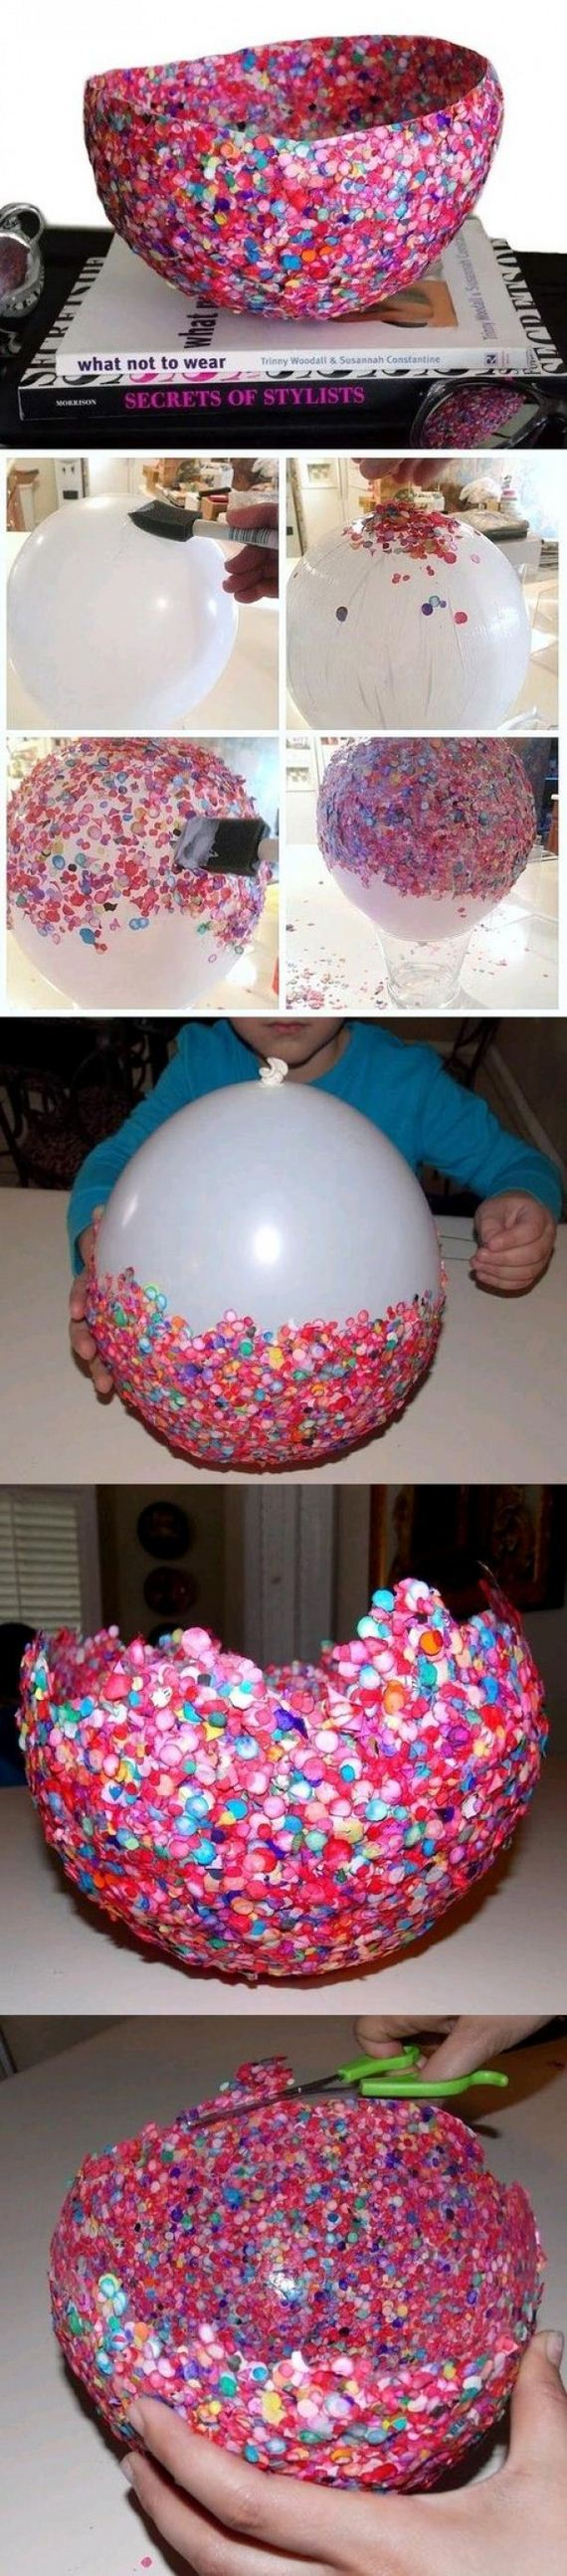 03-diy-home-craft-ideas-and-tips-thrifty-home-decor-1